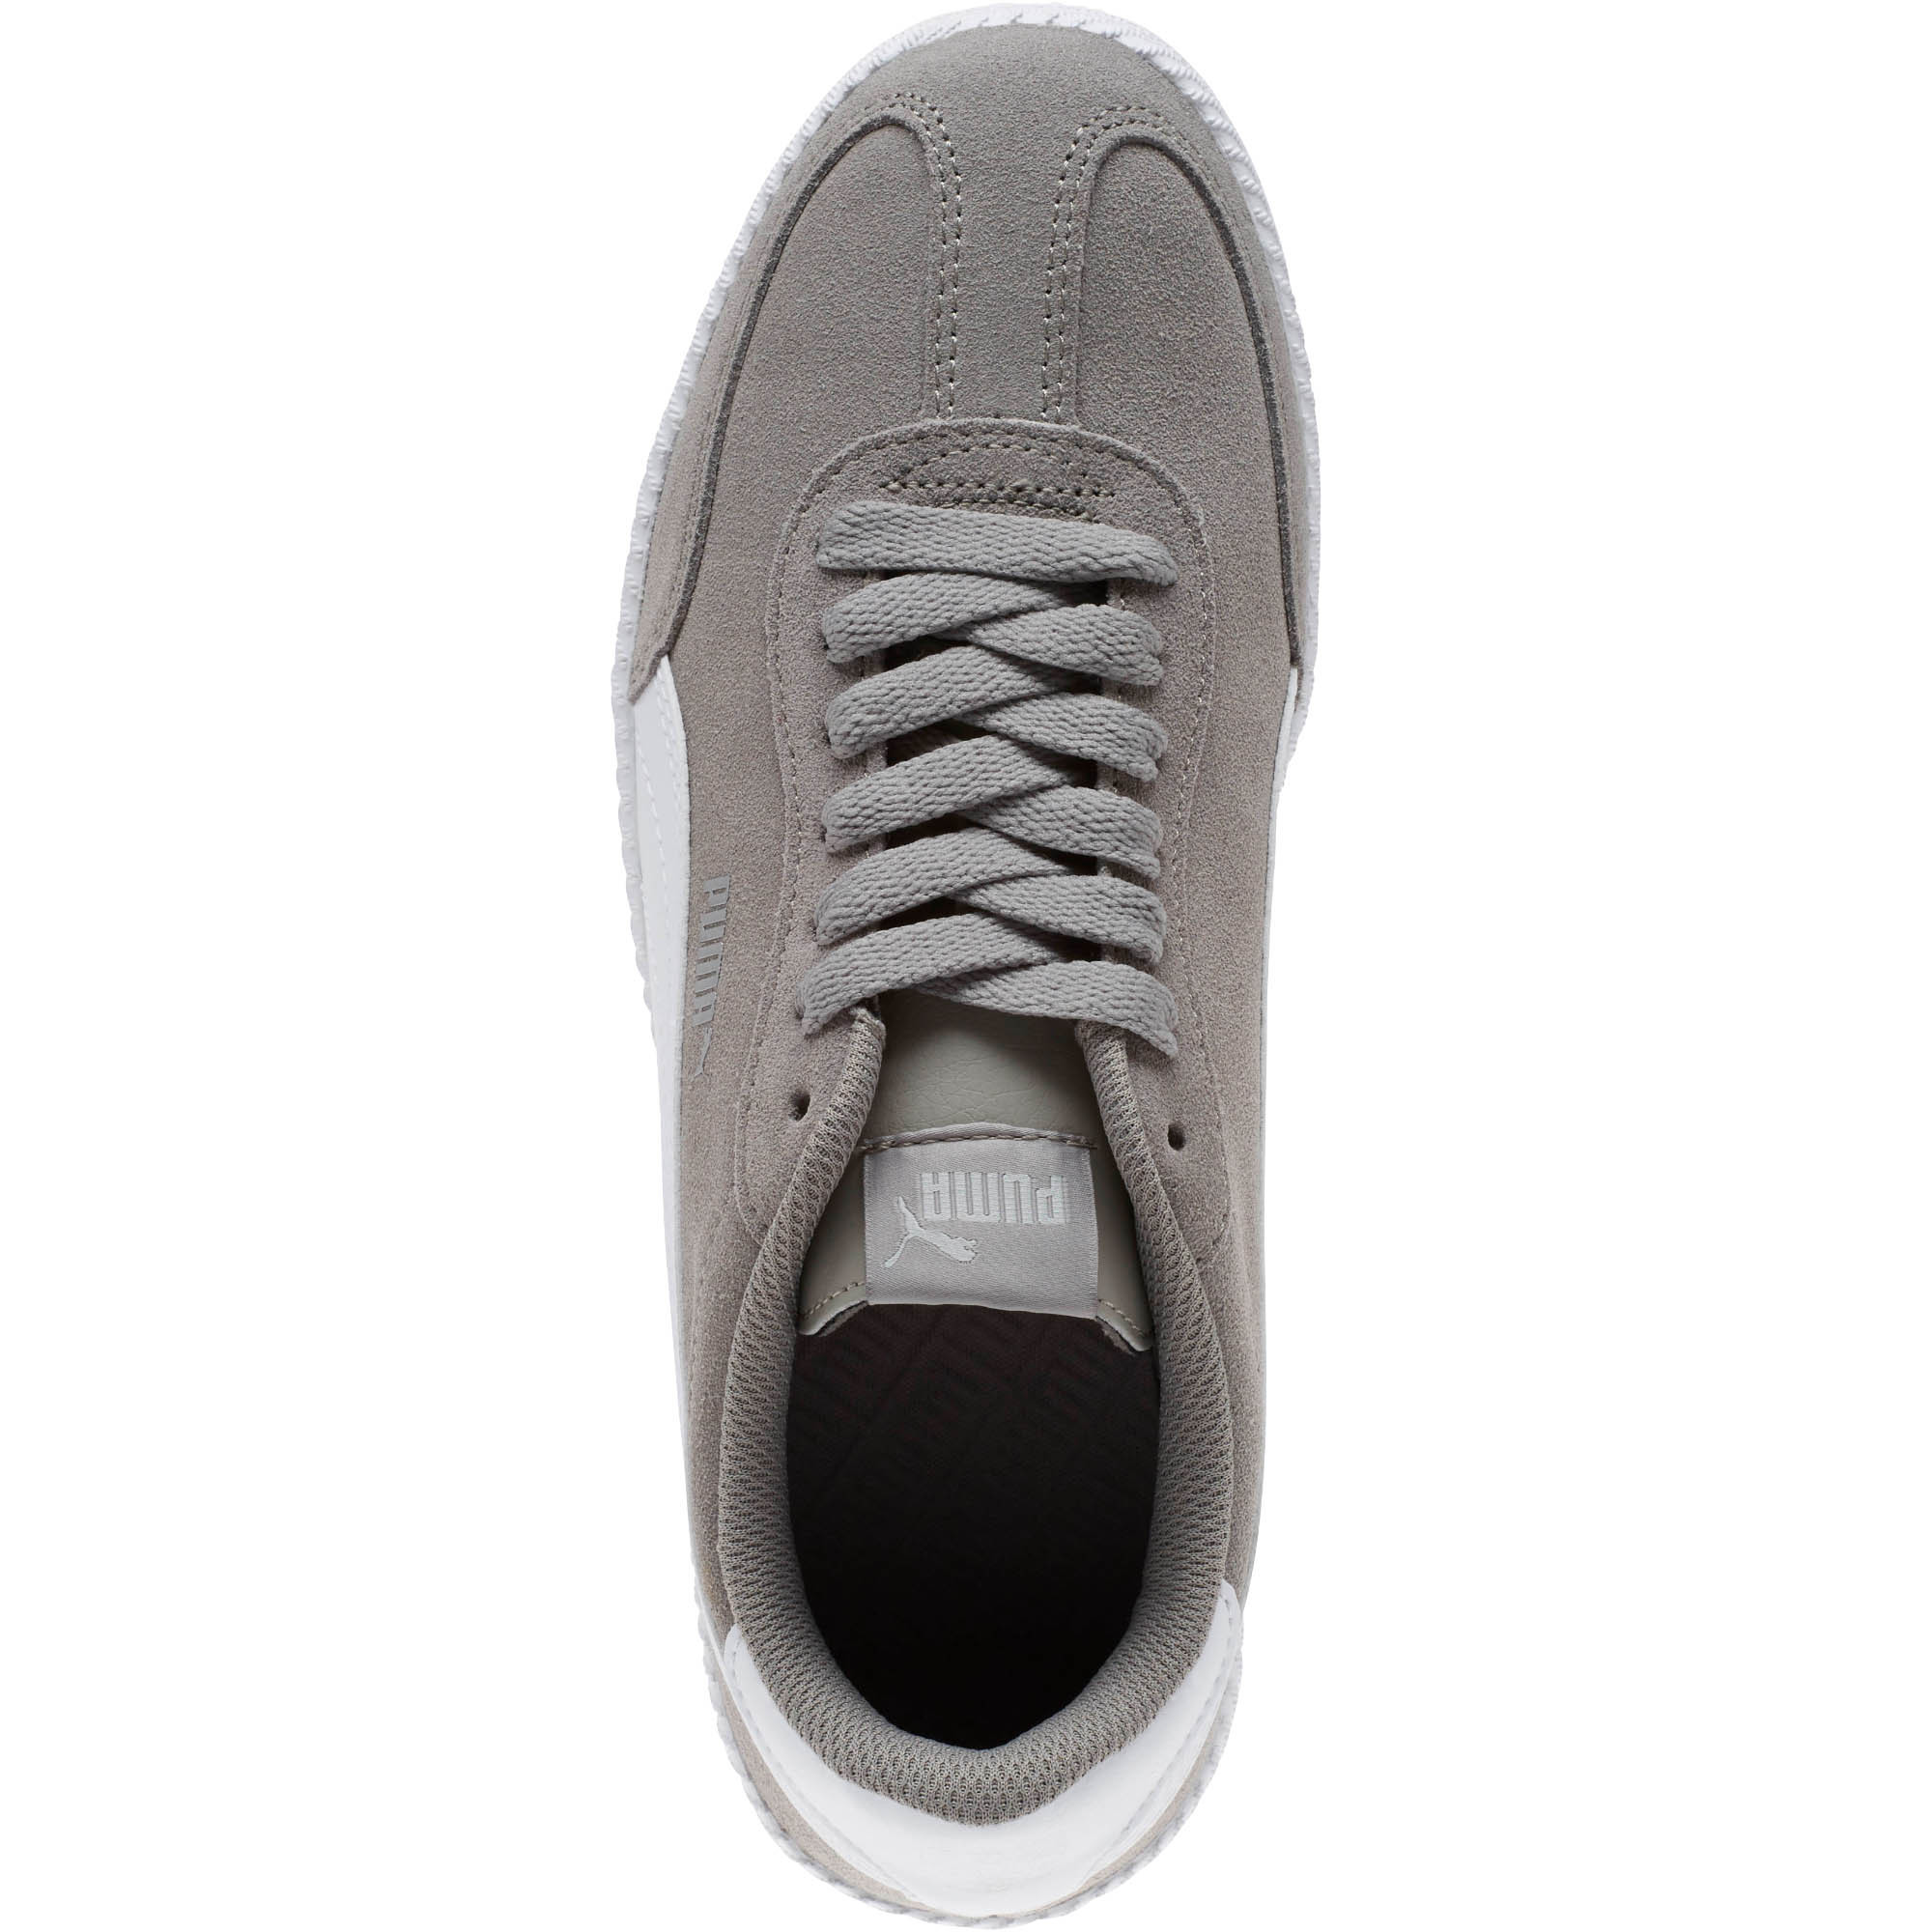 PUMA-Astro-Cup-Suede-Sneakers-Men-Shoe-Basics thumbnail 21